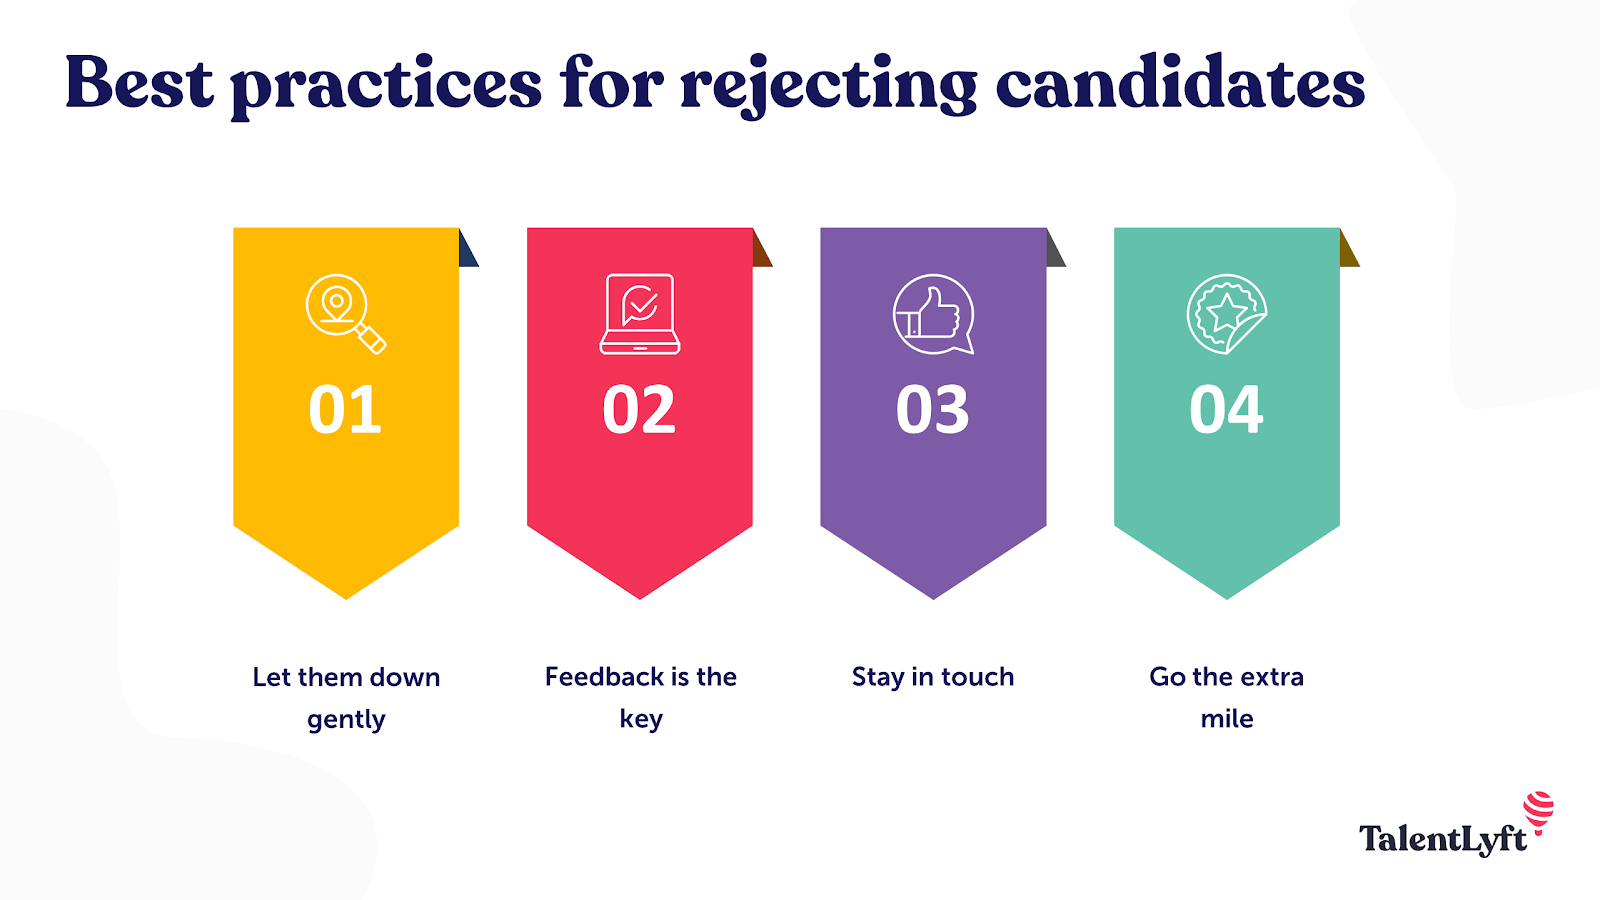 Best ways to reject candidates